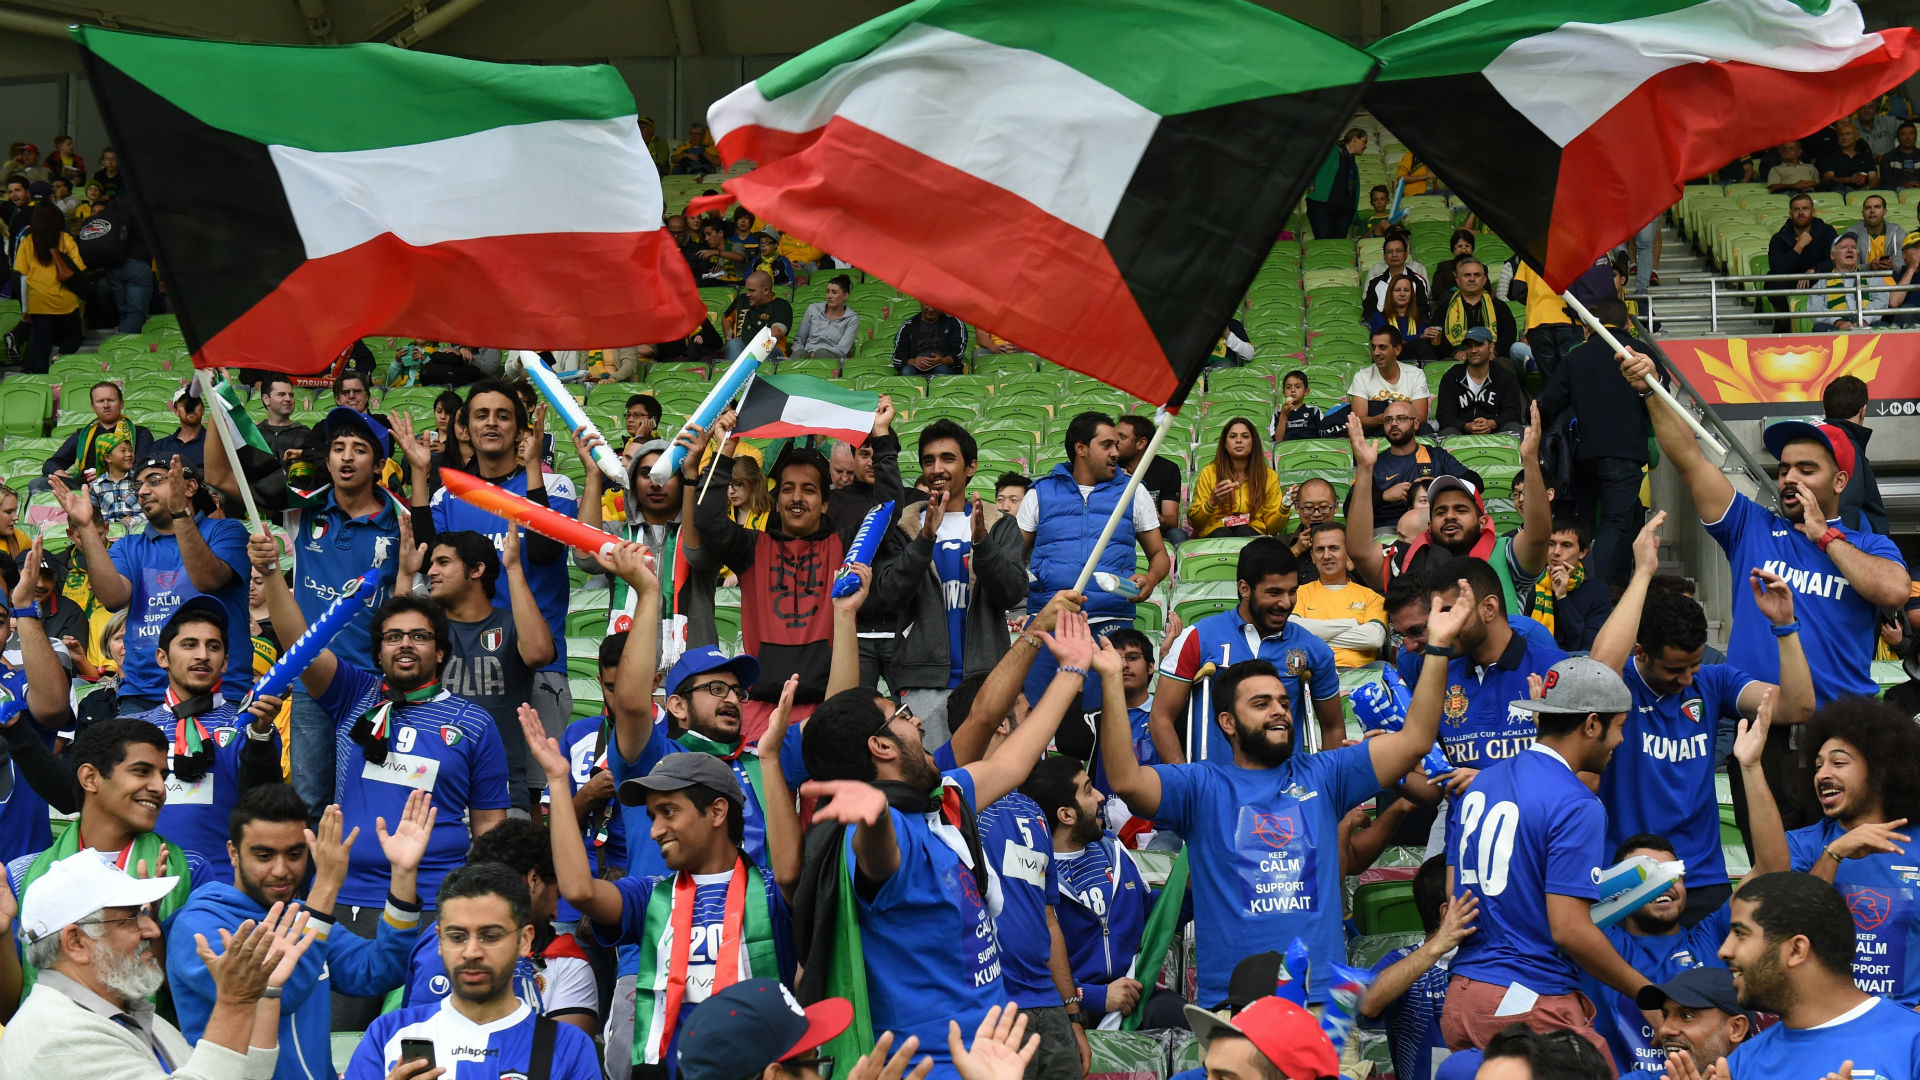 Federation Internationale de Football Association lifts Kuwait's 2-year ban from global soccer